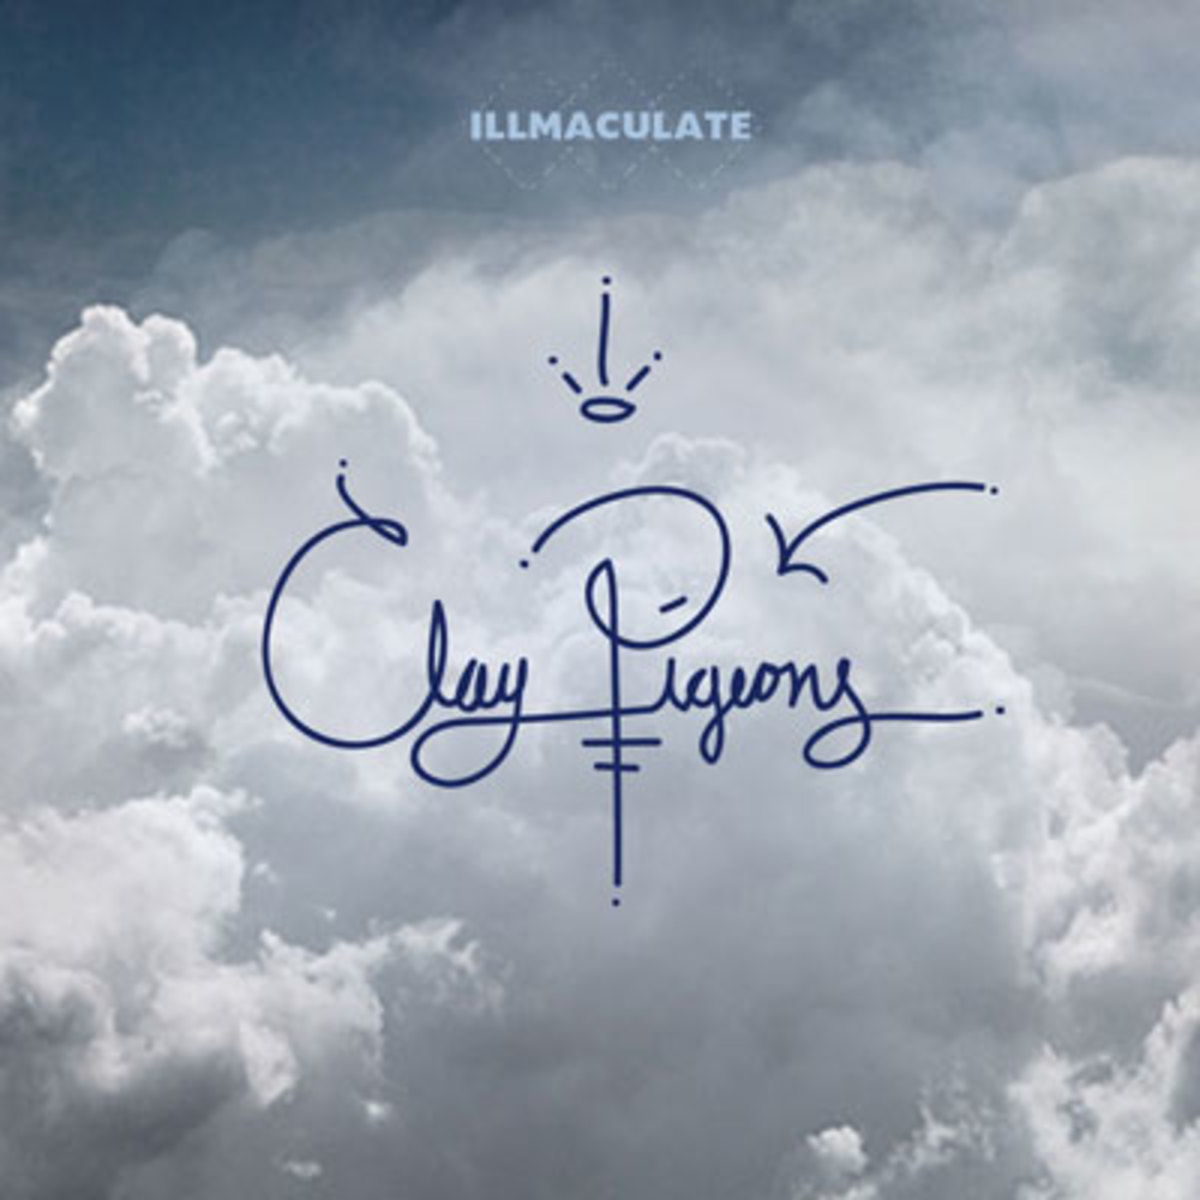 illmaculate-claypigeons.jpg